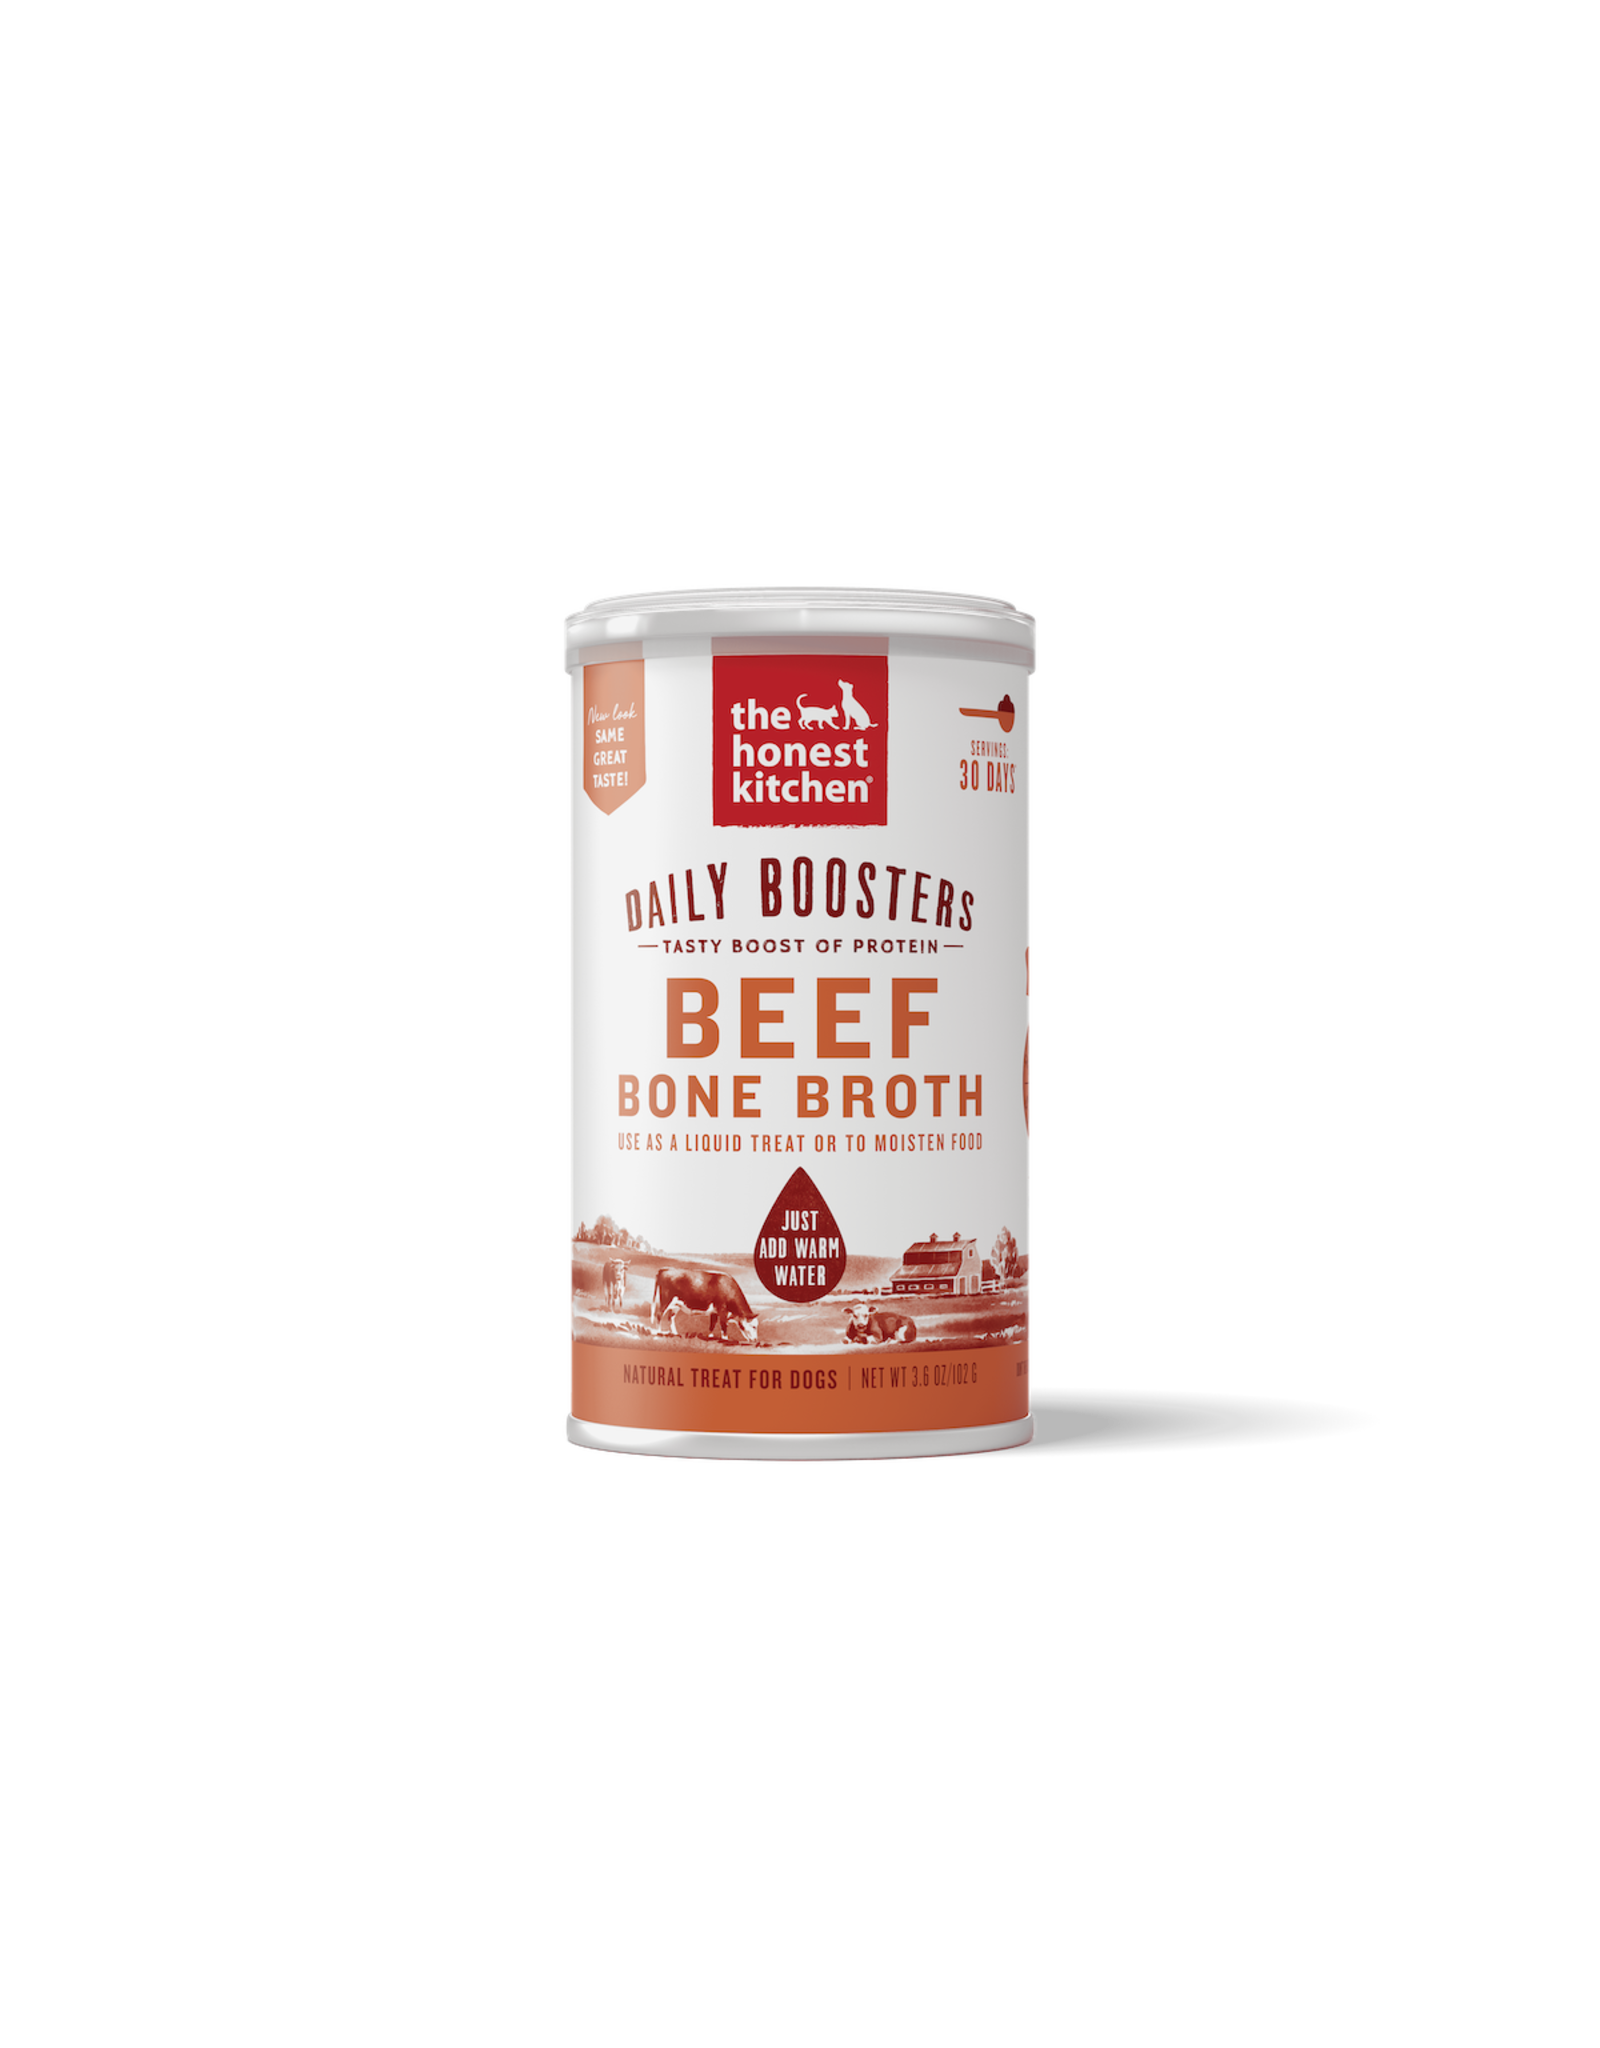 The Honest Kitchen THE HONEST KITCHEN DAILY BOOSTERS BEEF BONE BROTH